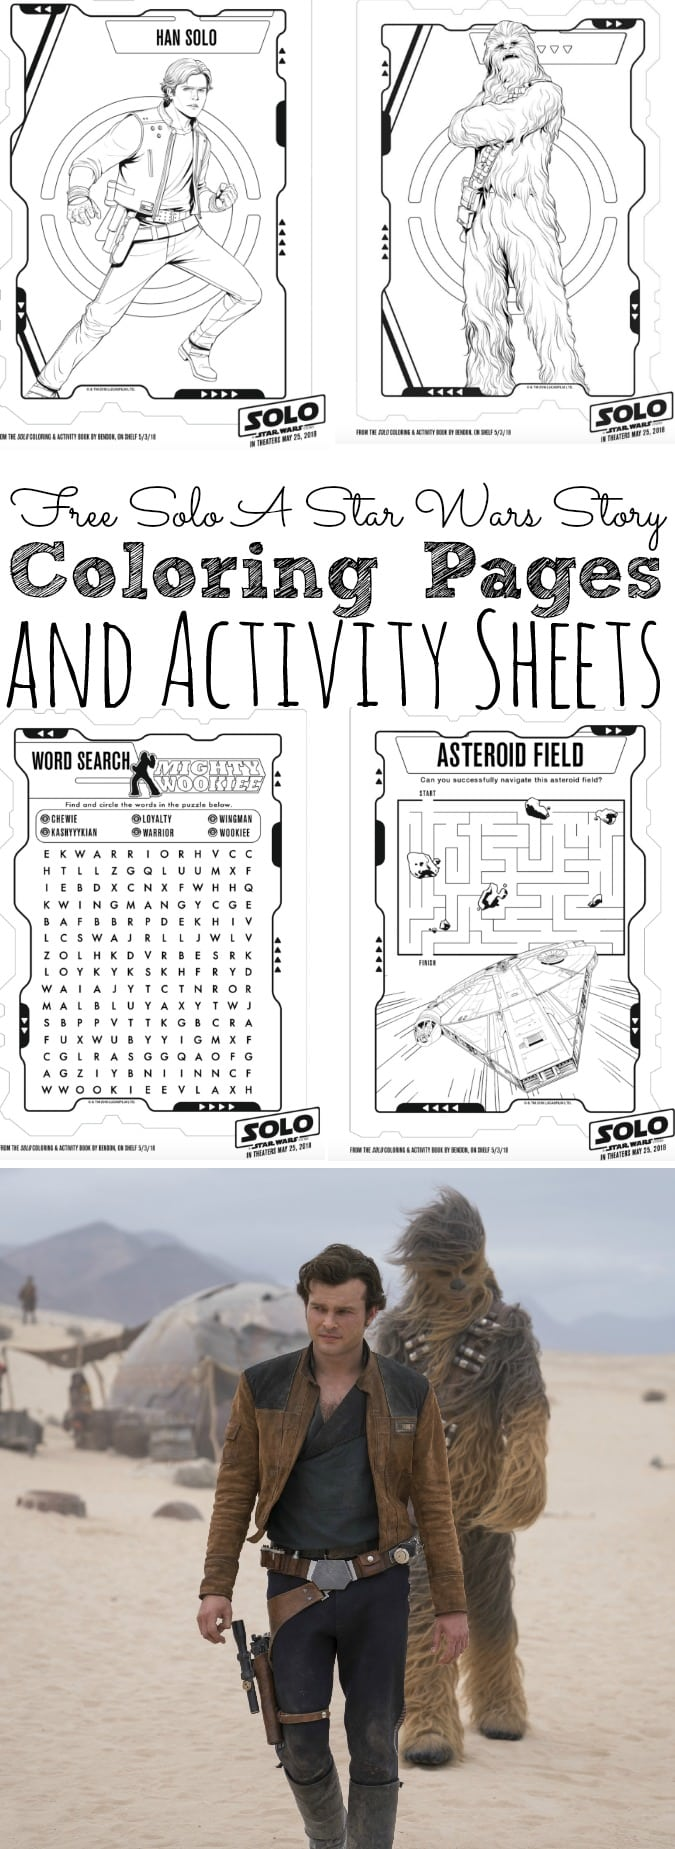 Free Solo A Star Wars Story Coloring Pages and Activity Sheets #HanSolo - simplytodaylife.com